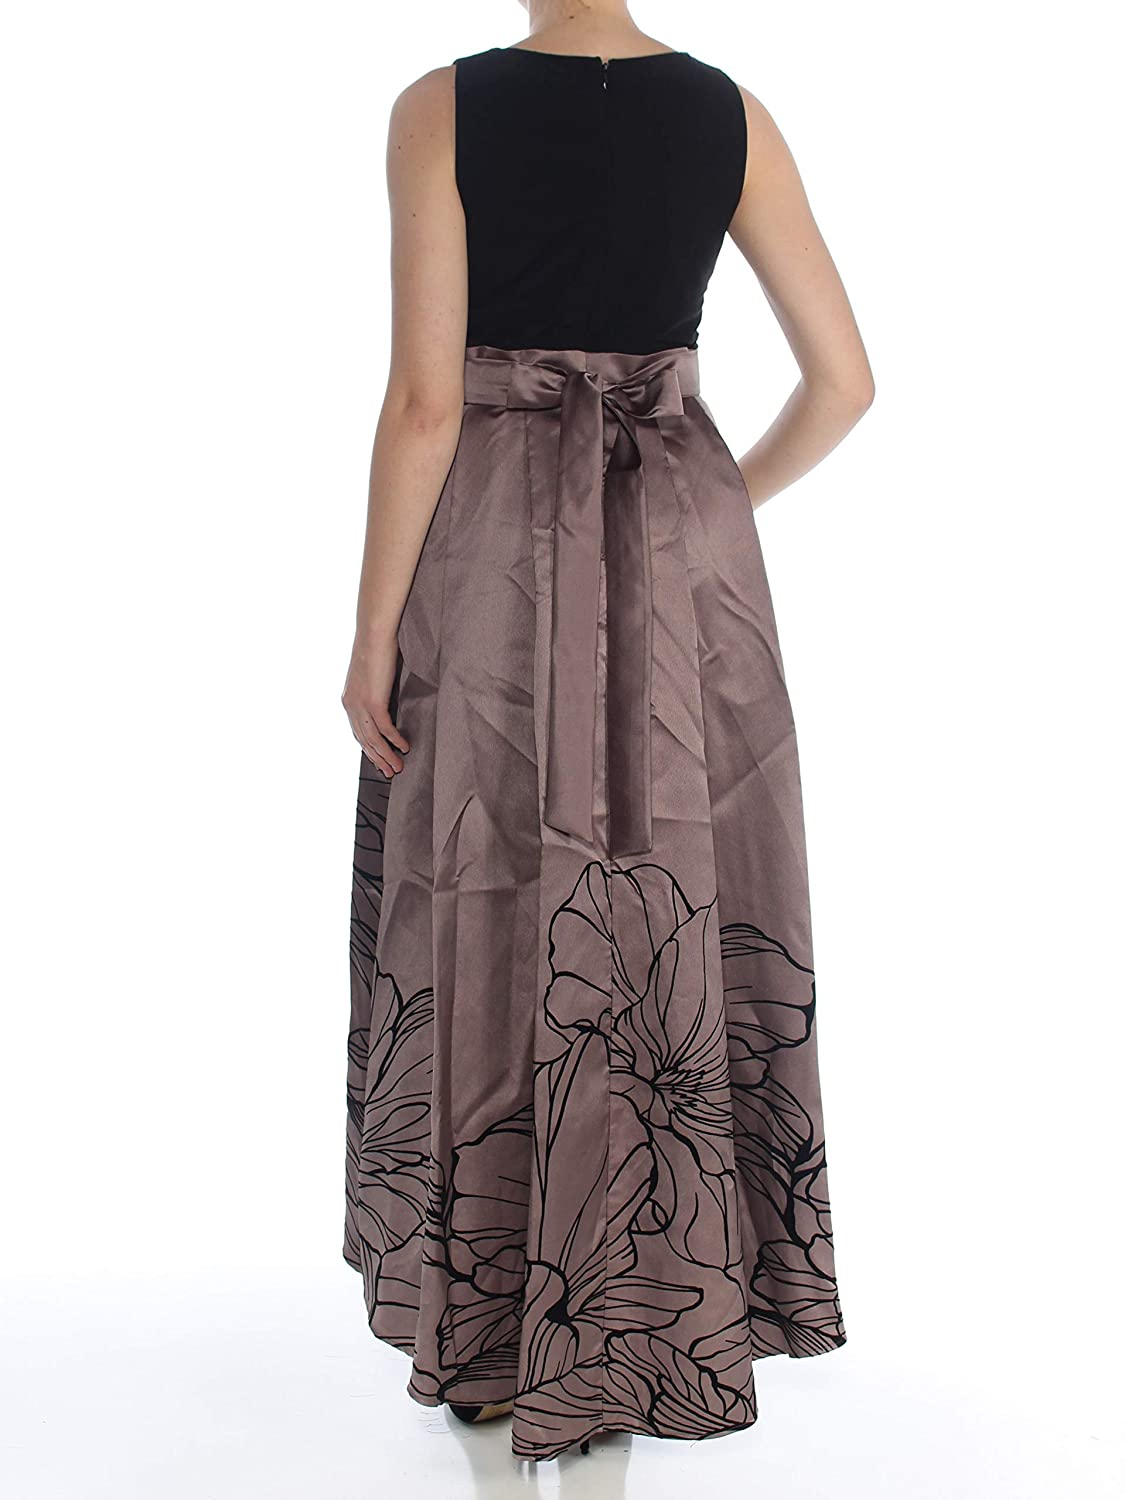 5de171138827 Ignite Evenings Women's Gown Floral Pleated Dress Black 8 at Amazon Women's  Clothing store: